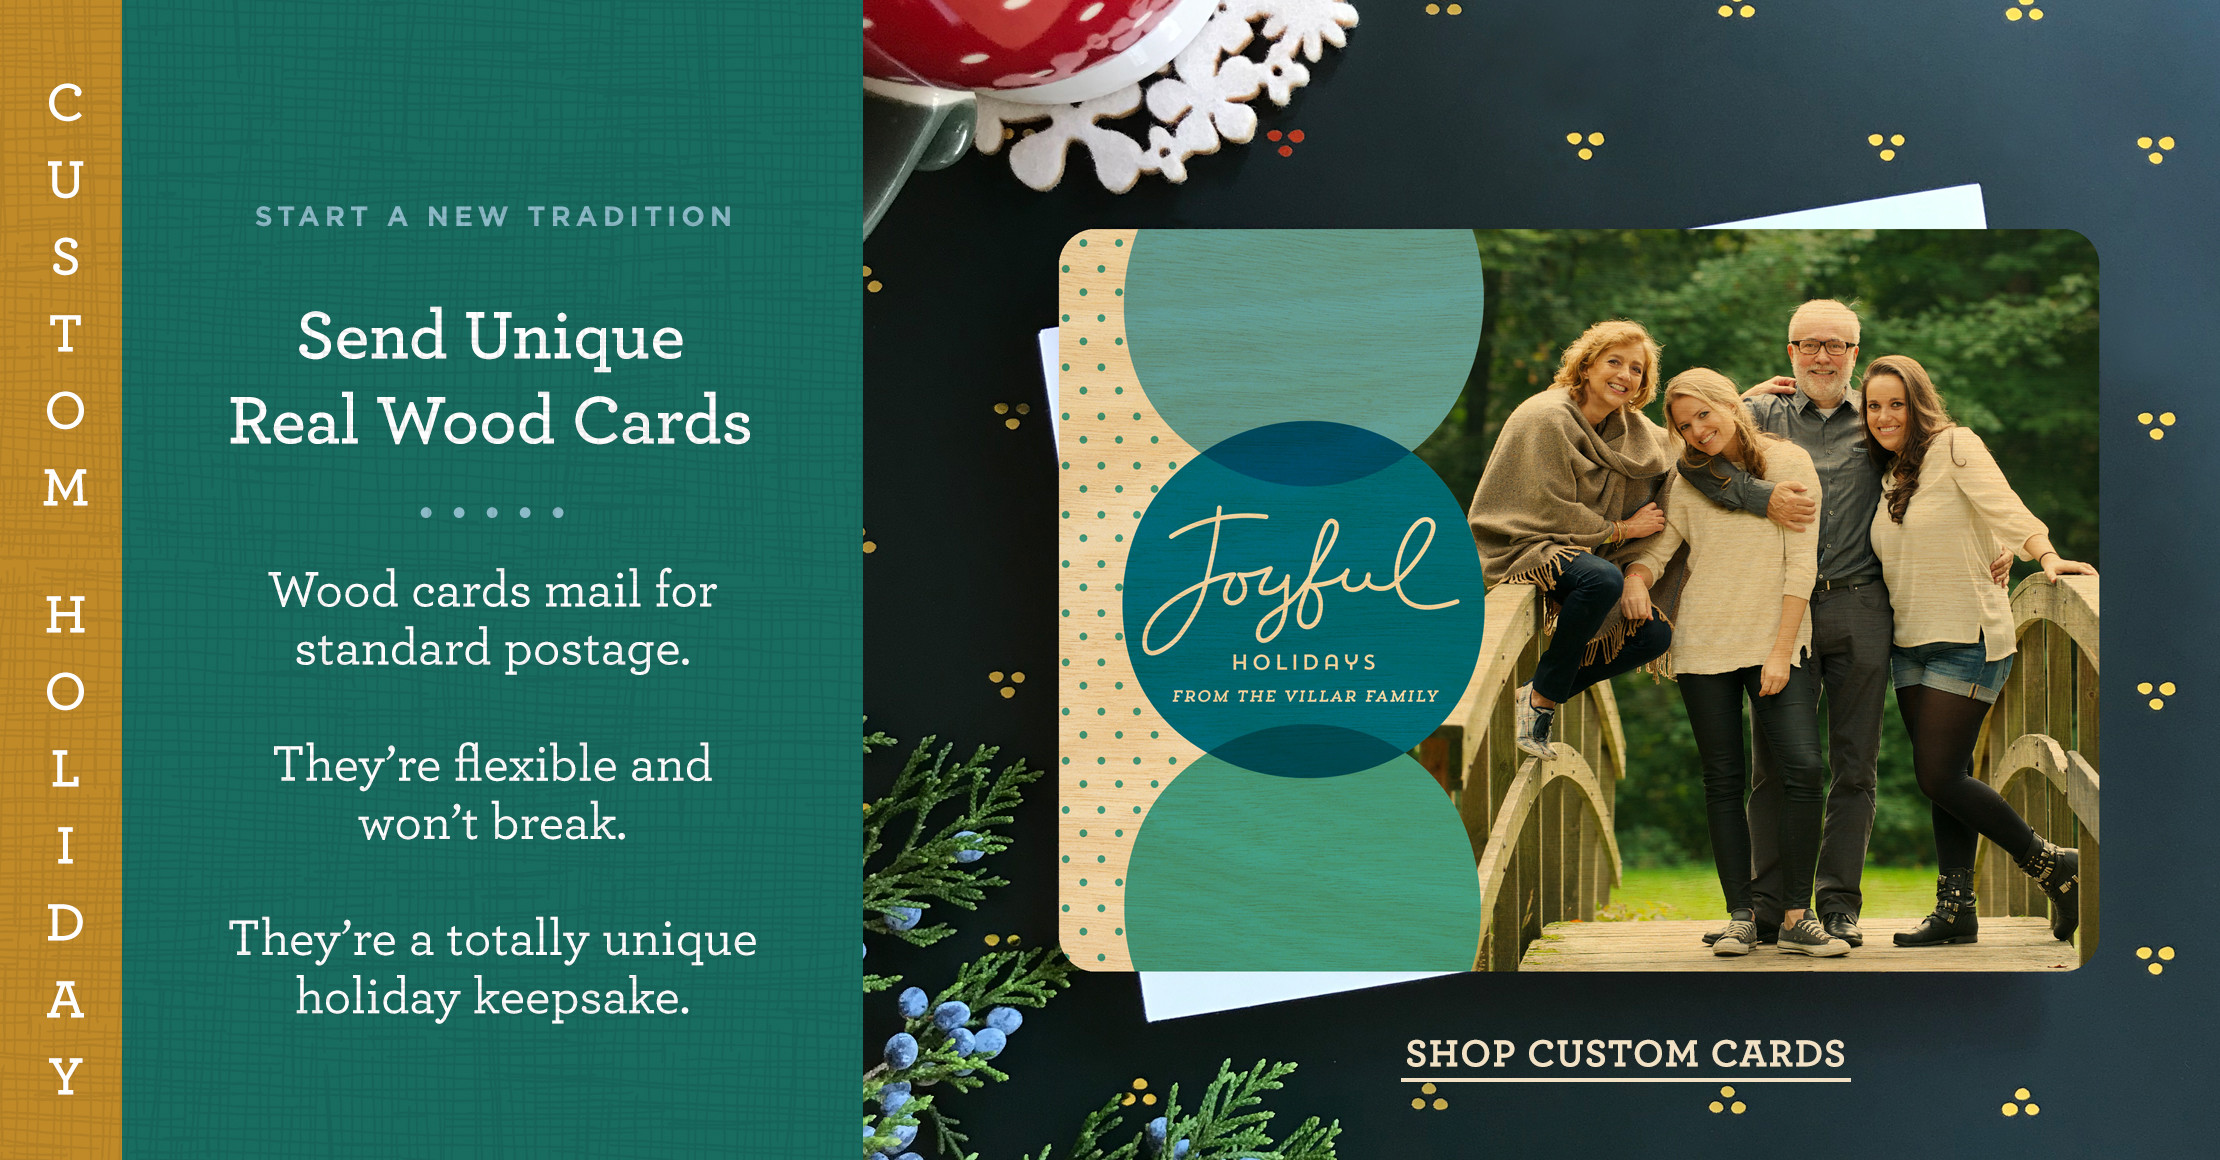 Start a new tradition with Custom Real Wood Holiday Card